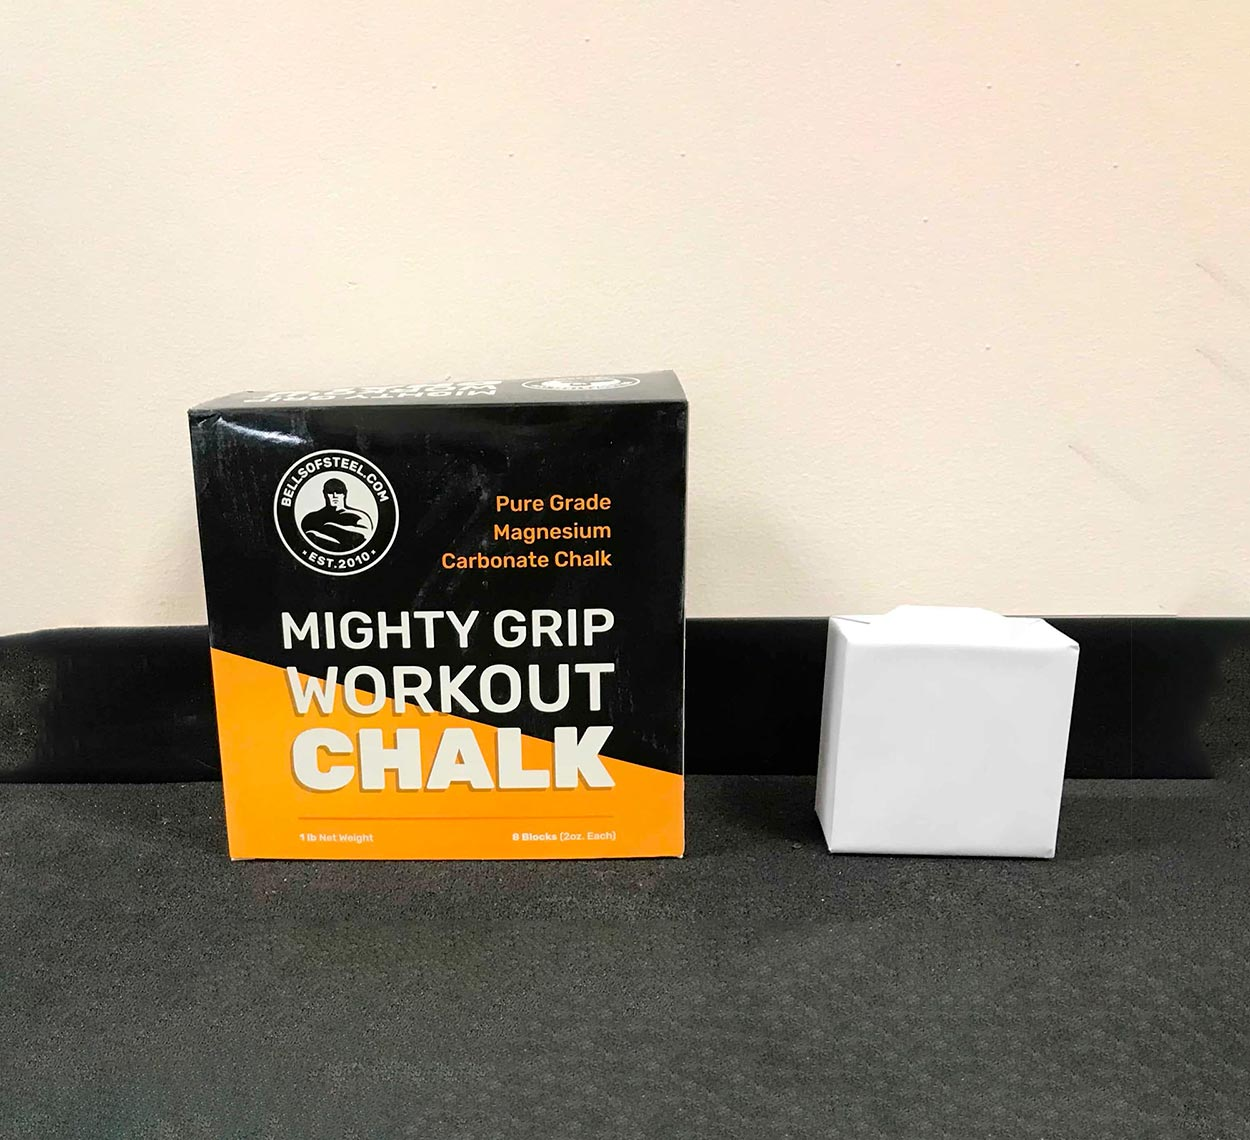 bos-mighty-grip-workout-chalk-01-min